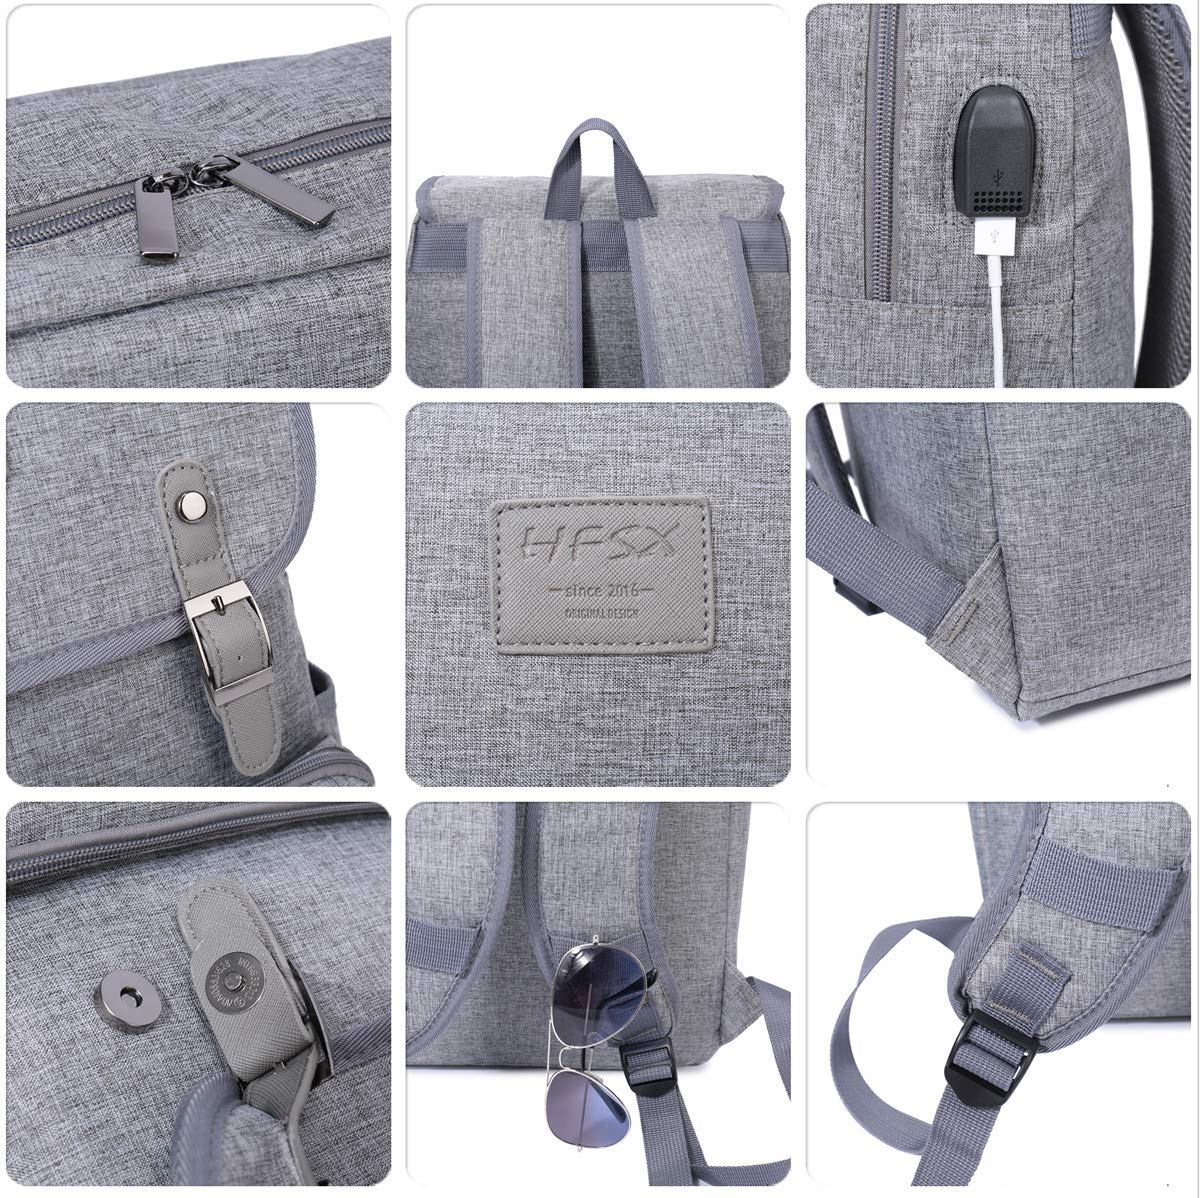 Laptop Backpack Men Women Business Travel Computer Backpack School College Bookbag Stylish Water Resistant Vintage Backpack with USB Port Fashion Grey Fits 15.6 Inch Laptop and Notebook HFSX HSFX-15A8-GREY